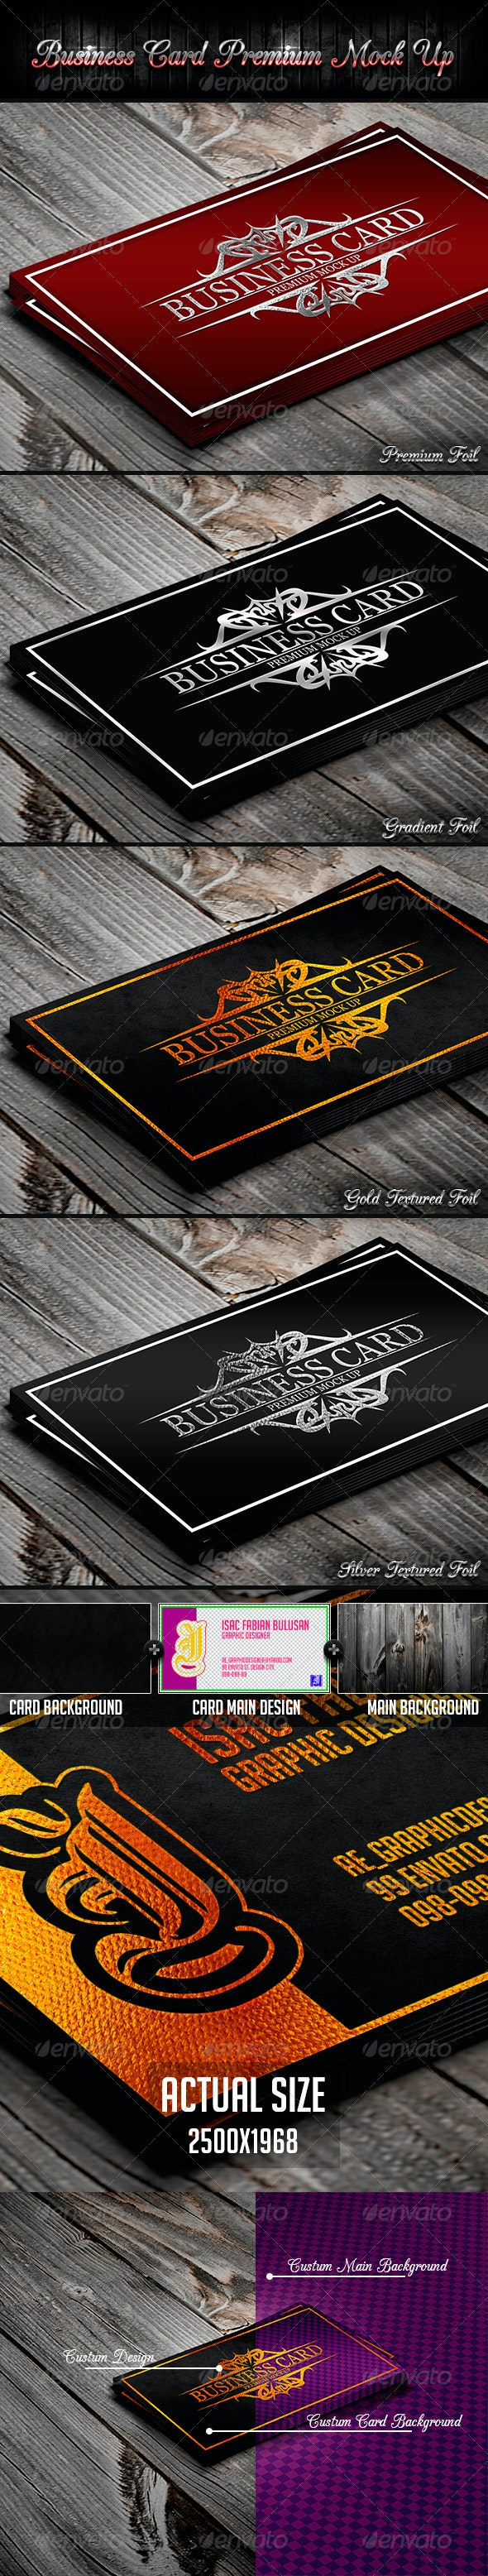 Business Card Premium Mock-Up - Business Cards Print